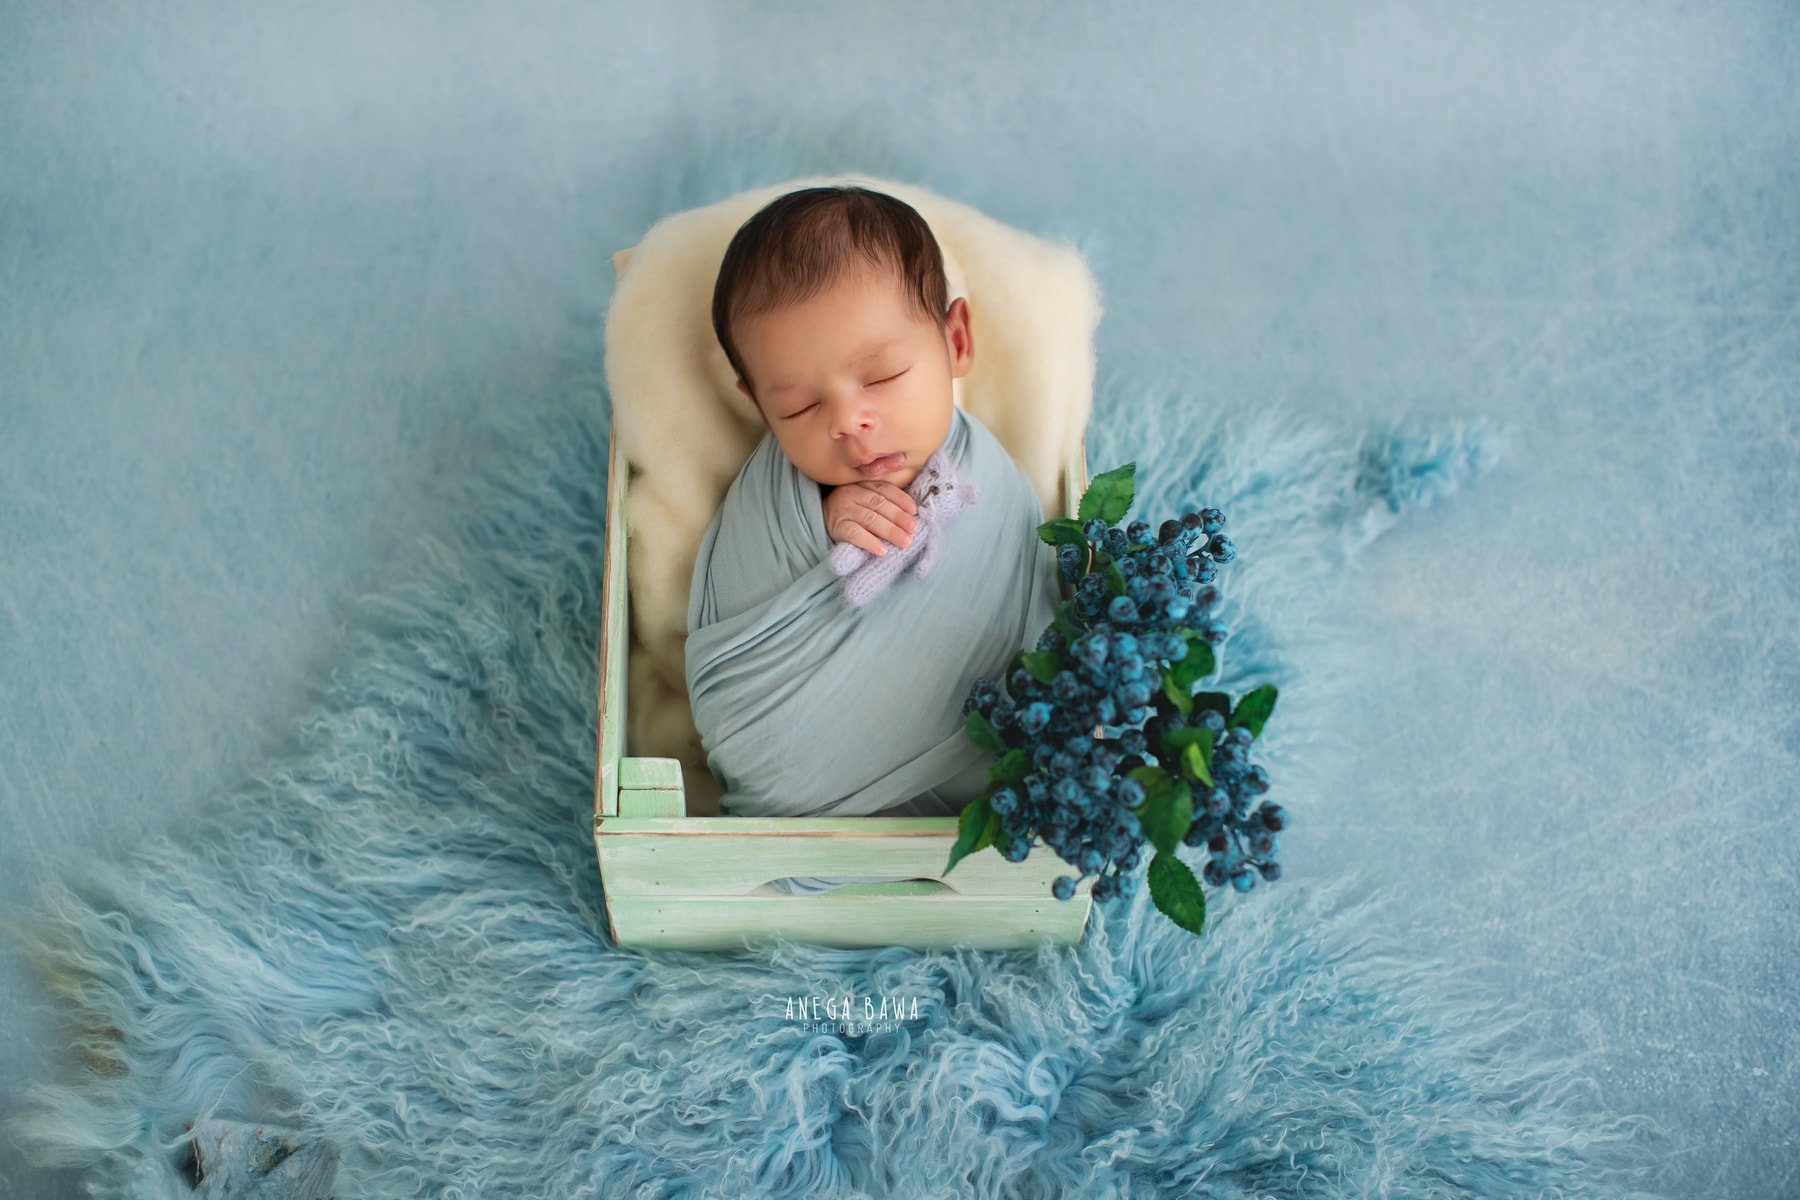 blue floral newborn photography delhi 19 days baby boy photoshoot gurgaon anega bawa